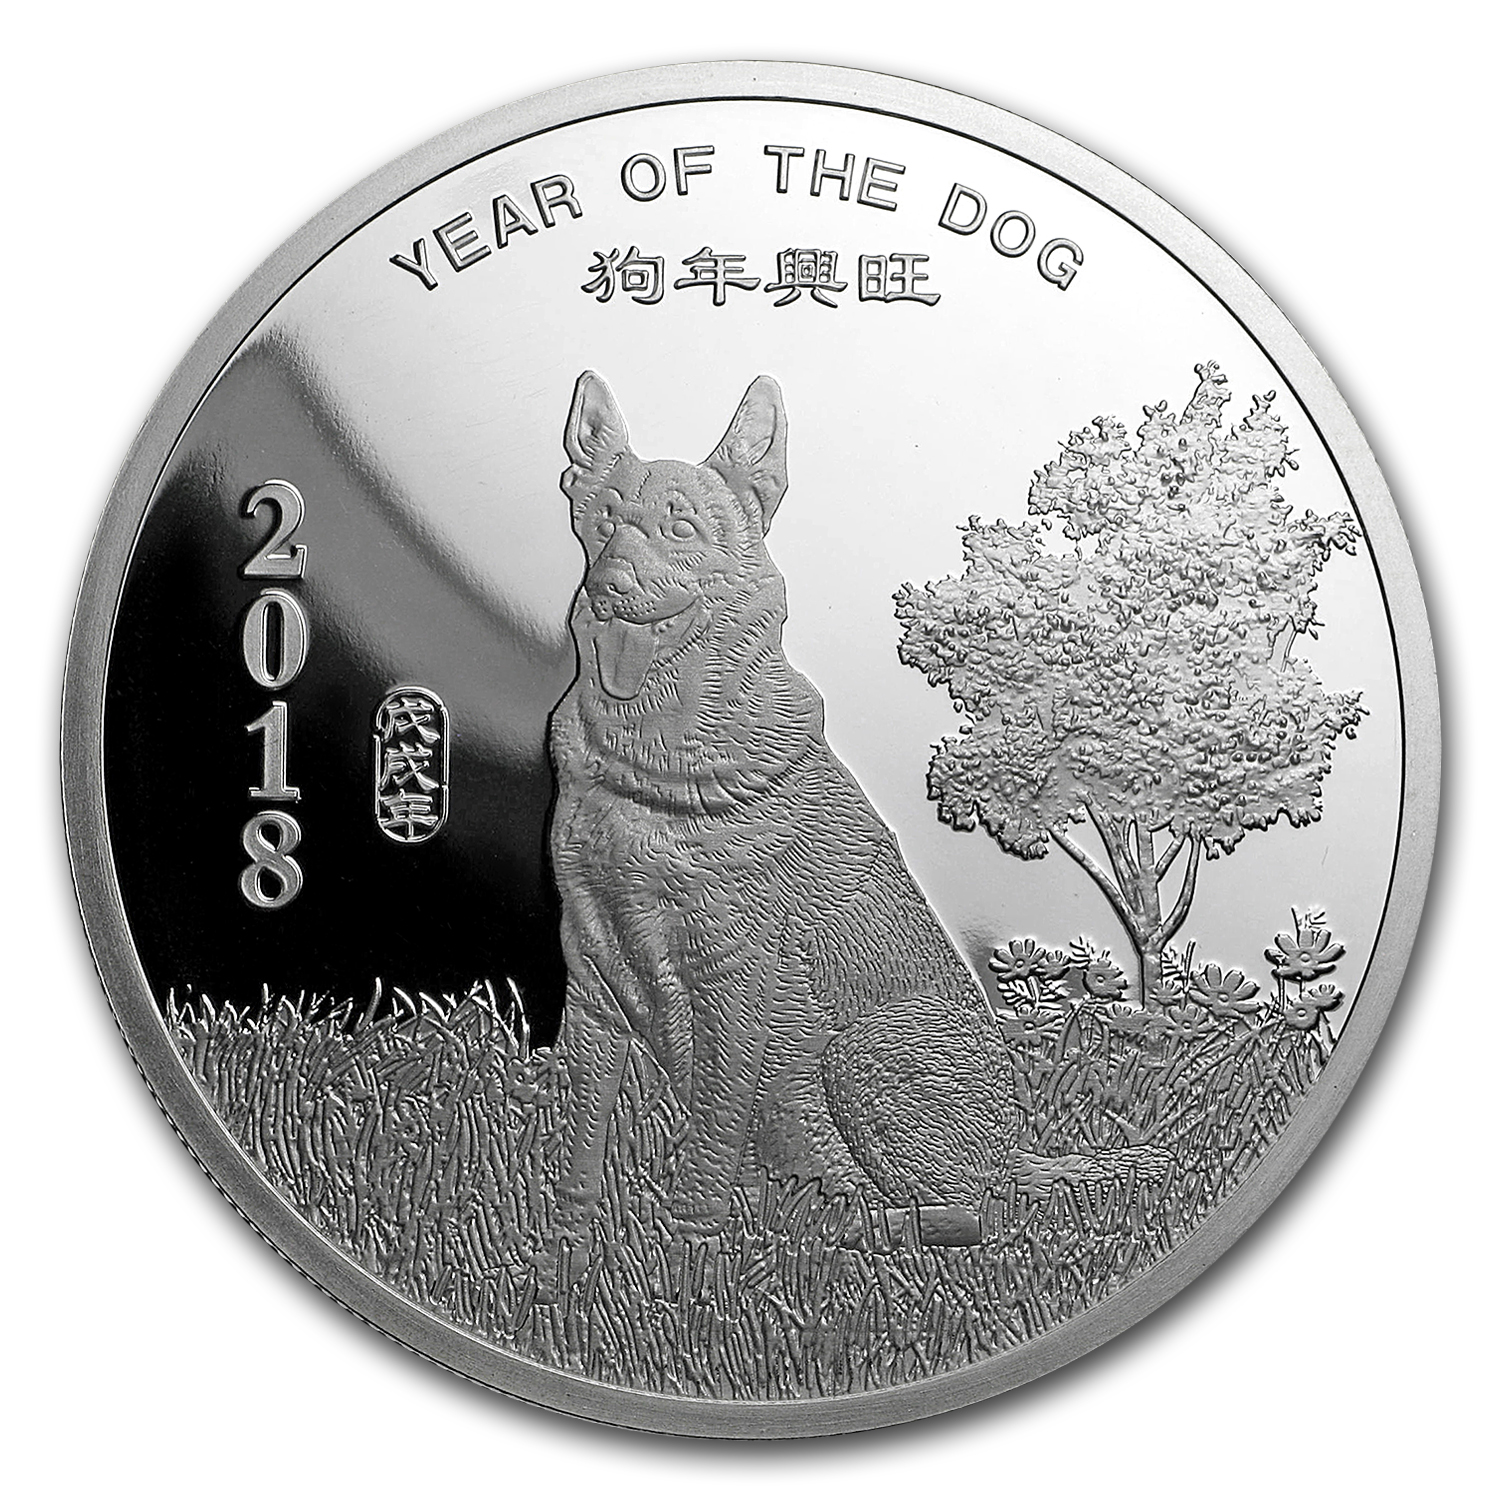 2 oz Silver Round - APMEX (2018 Year of the Dog)